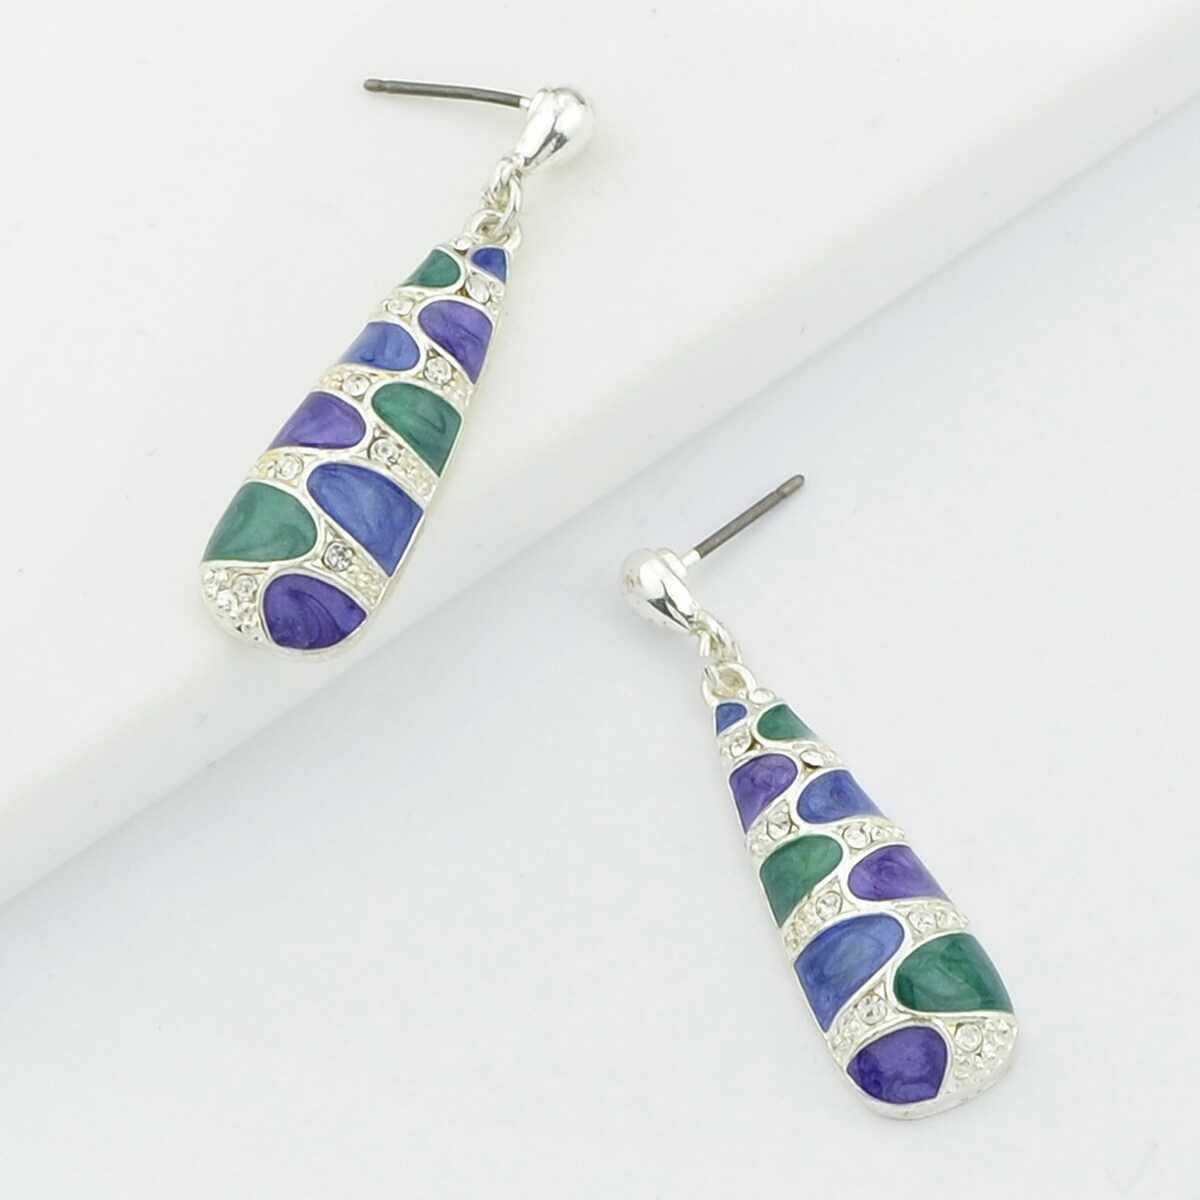 Enamel Dangle Earrings Female Accessories From India - Shein - GOOFASH